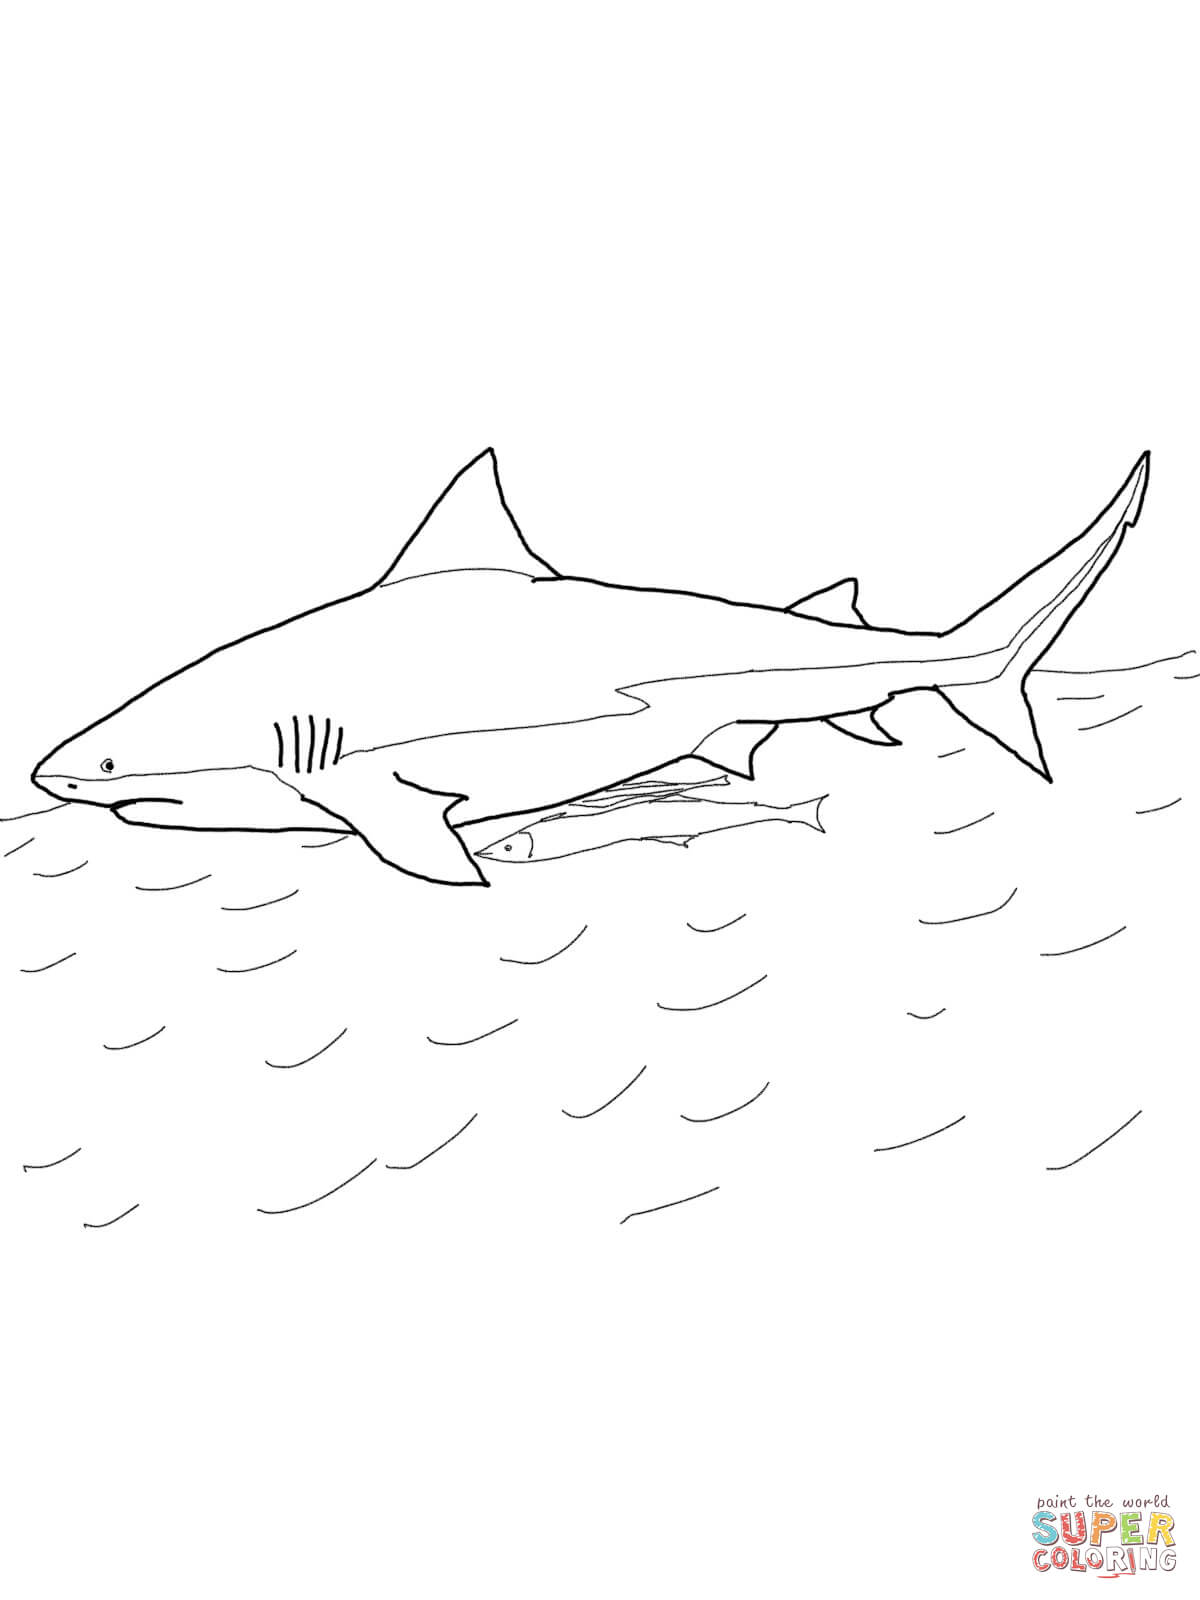 Whale Shark Drawing at GetDrawings.com | Free for personal use Whale ...